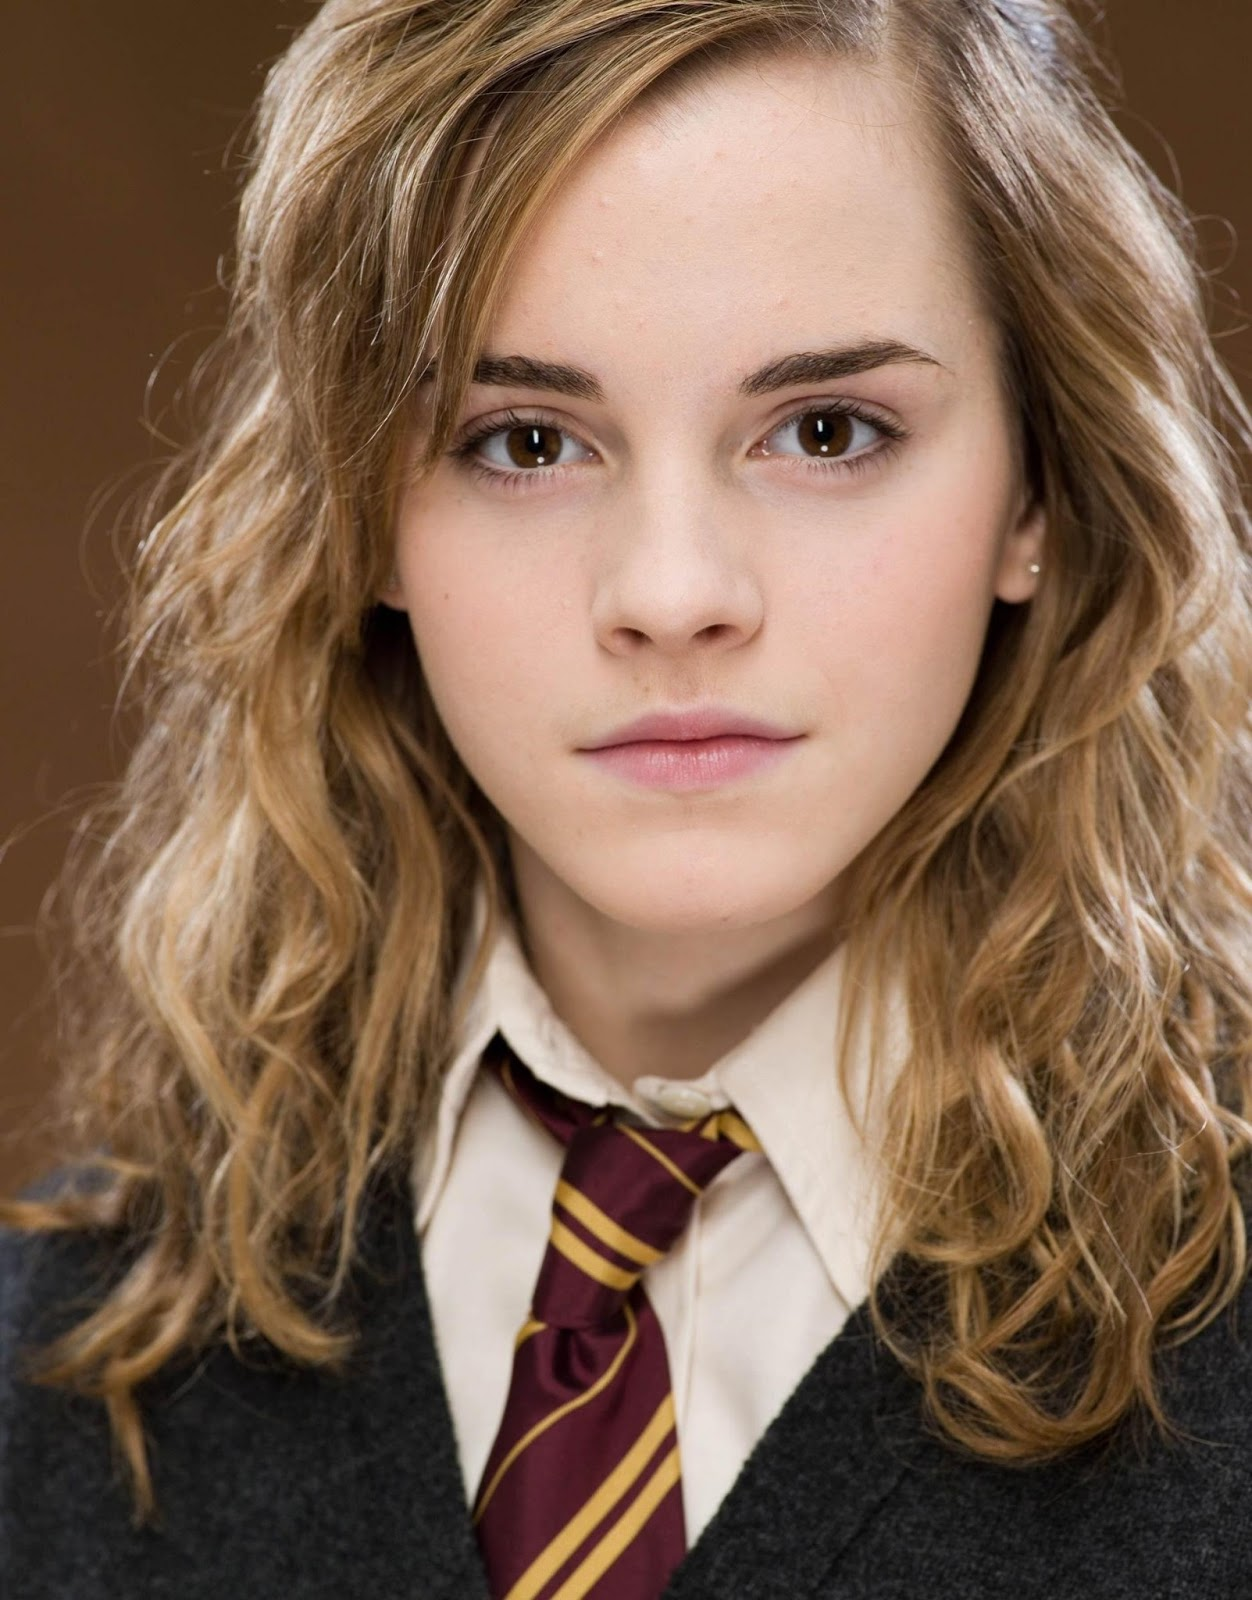 Actress Pictures Emma Watson